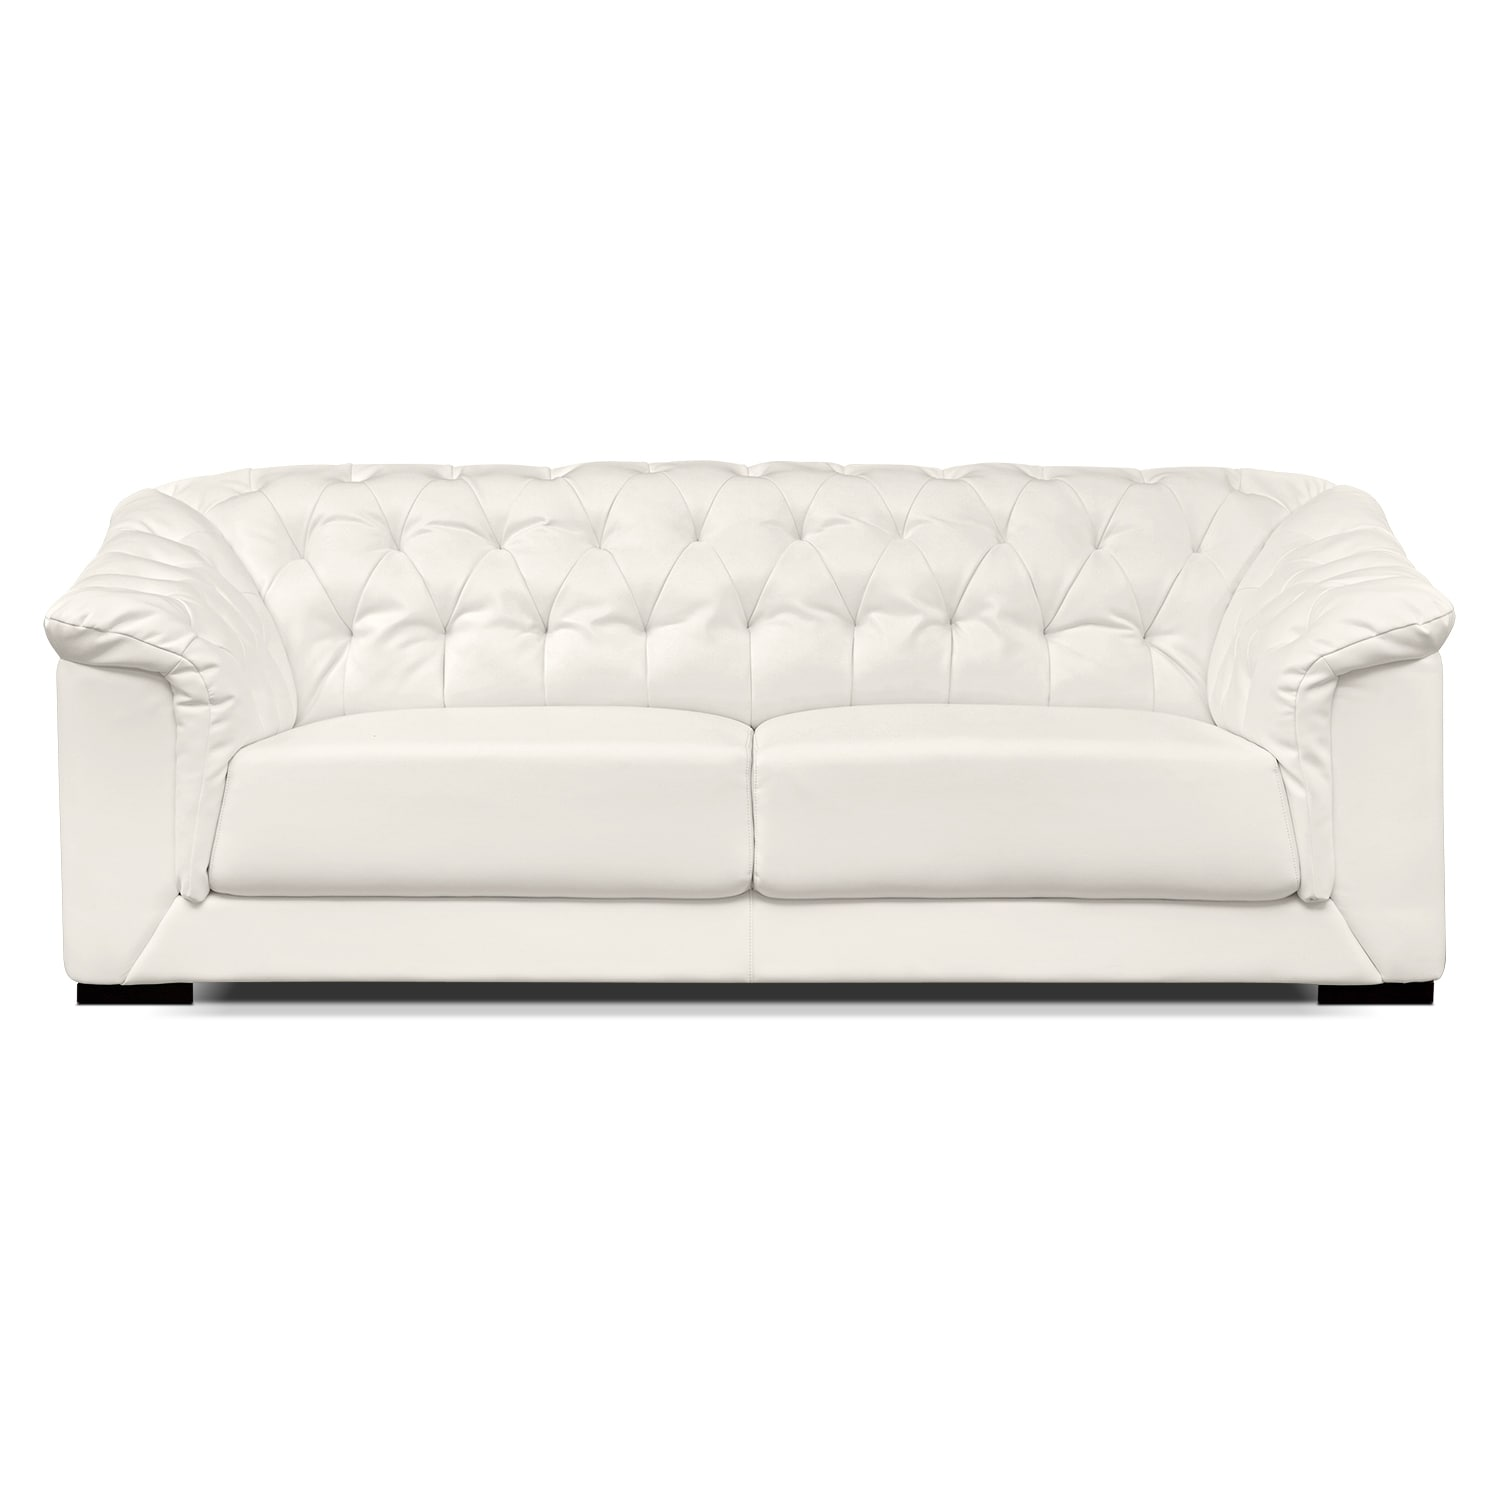 Living Room Furniture-Carmen White Sofa